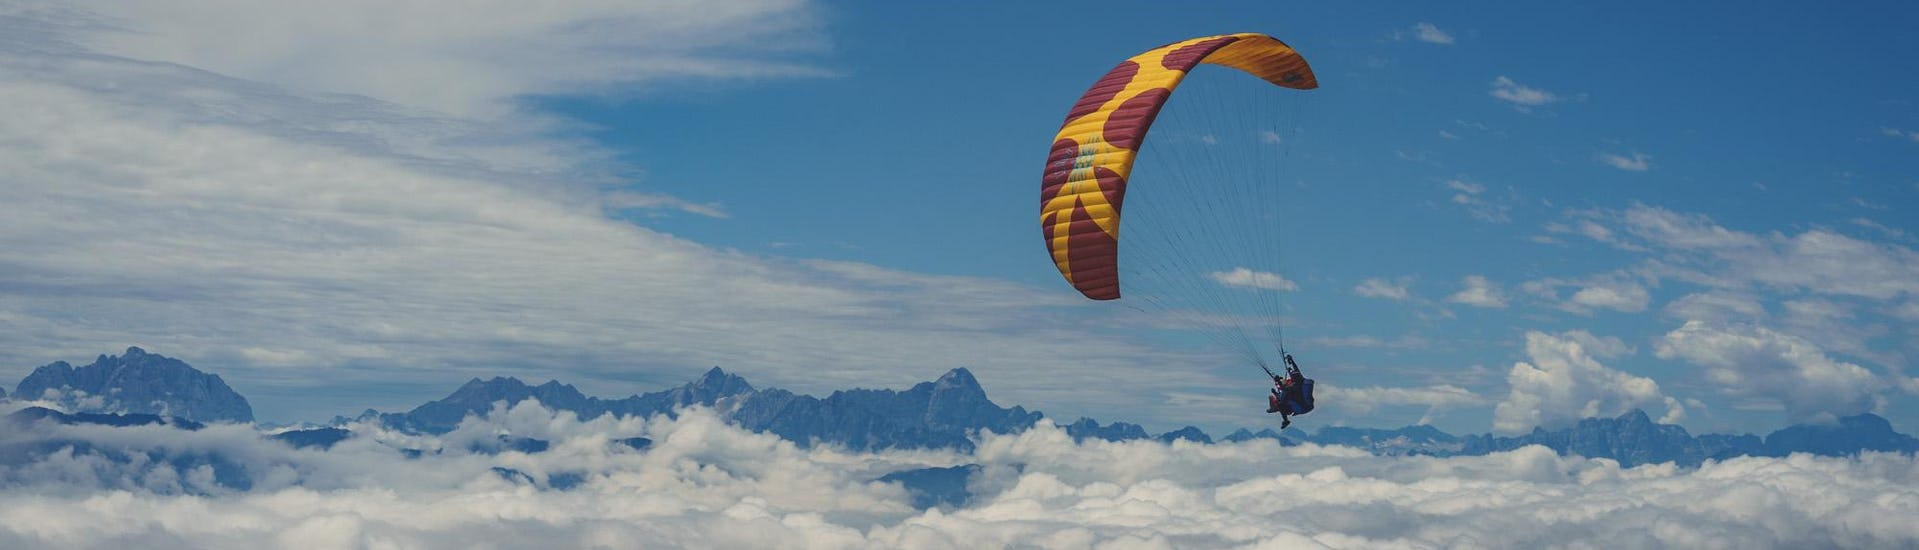 Thermic Tandem Paragliding in Carinthia